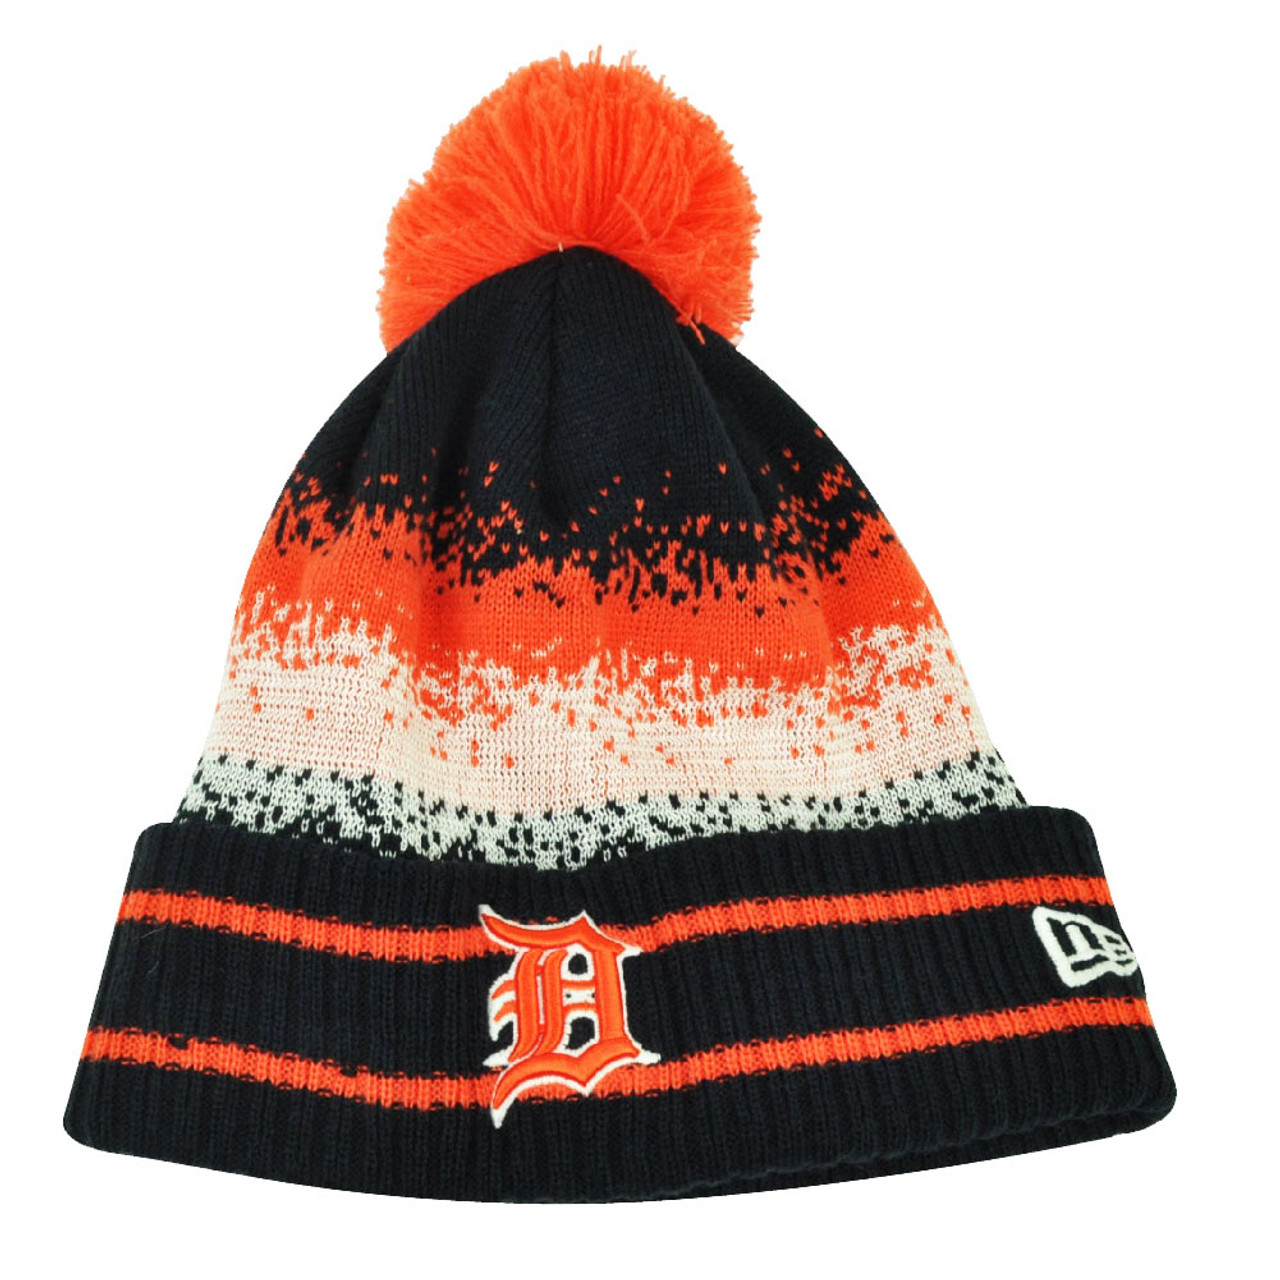 41eb03ef4 MLB New Era Spec Blend Detroit Tigers Cuffed Pom Pom Knit Beanie Hat Toque  Blue - Cap Store Online.com